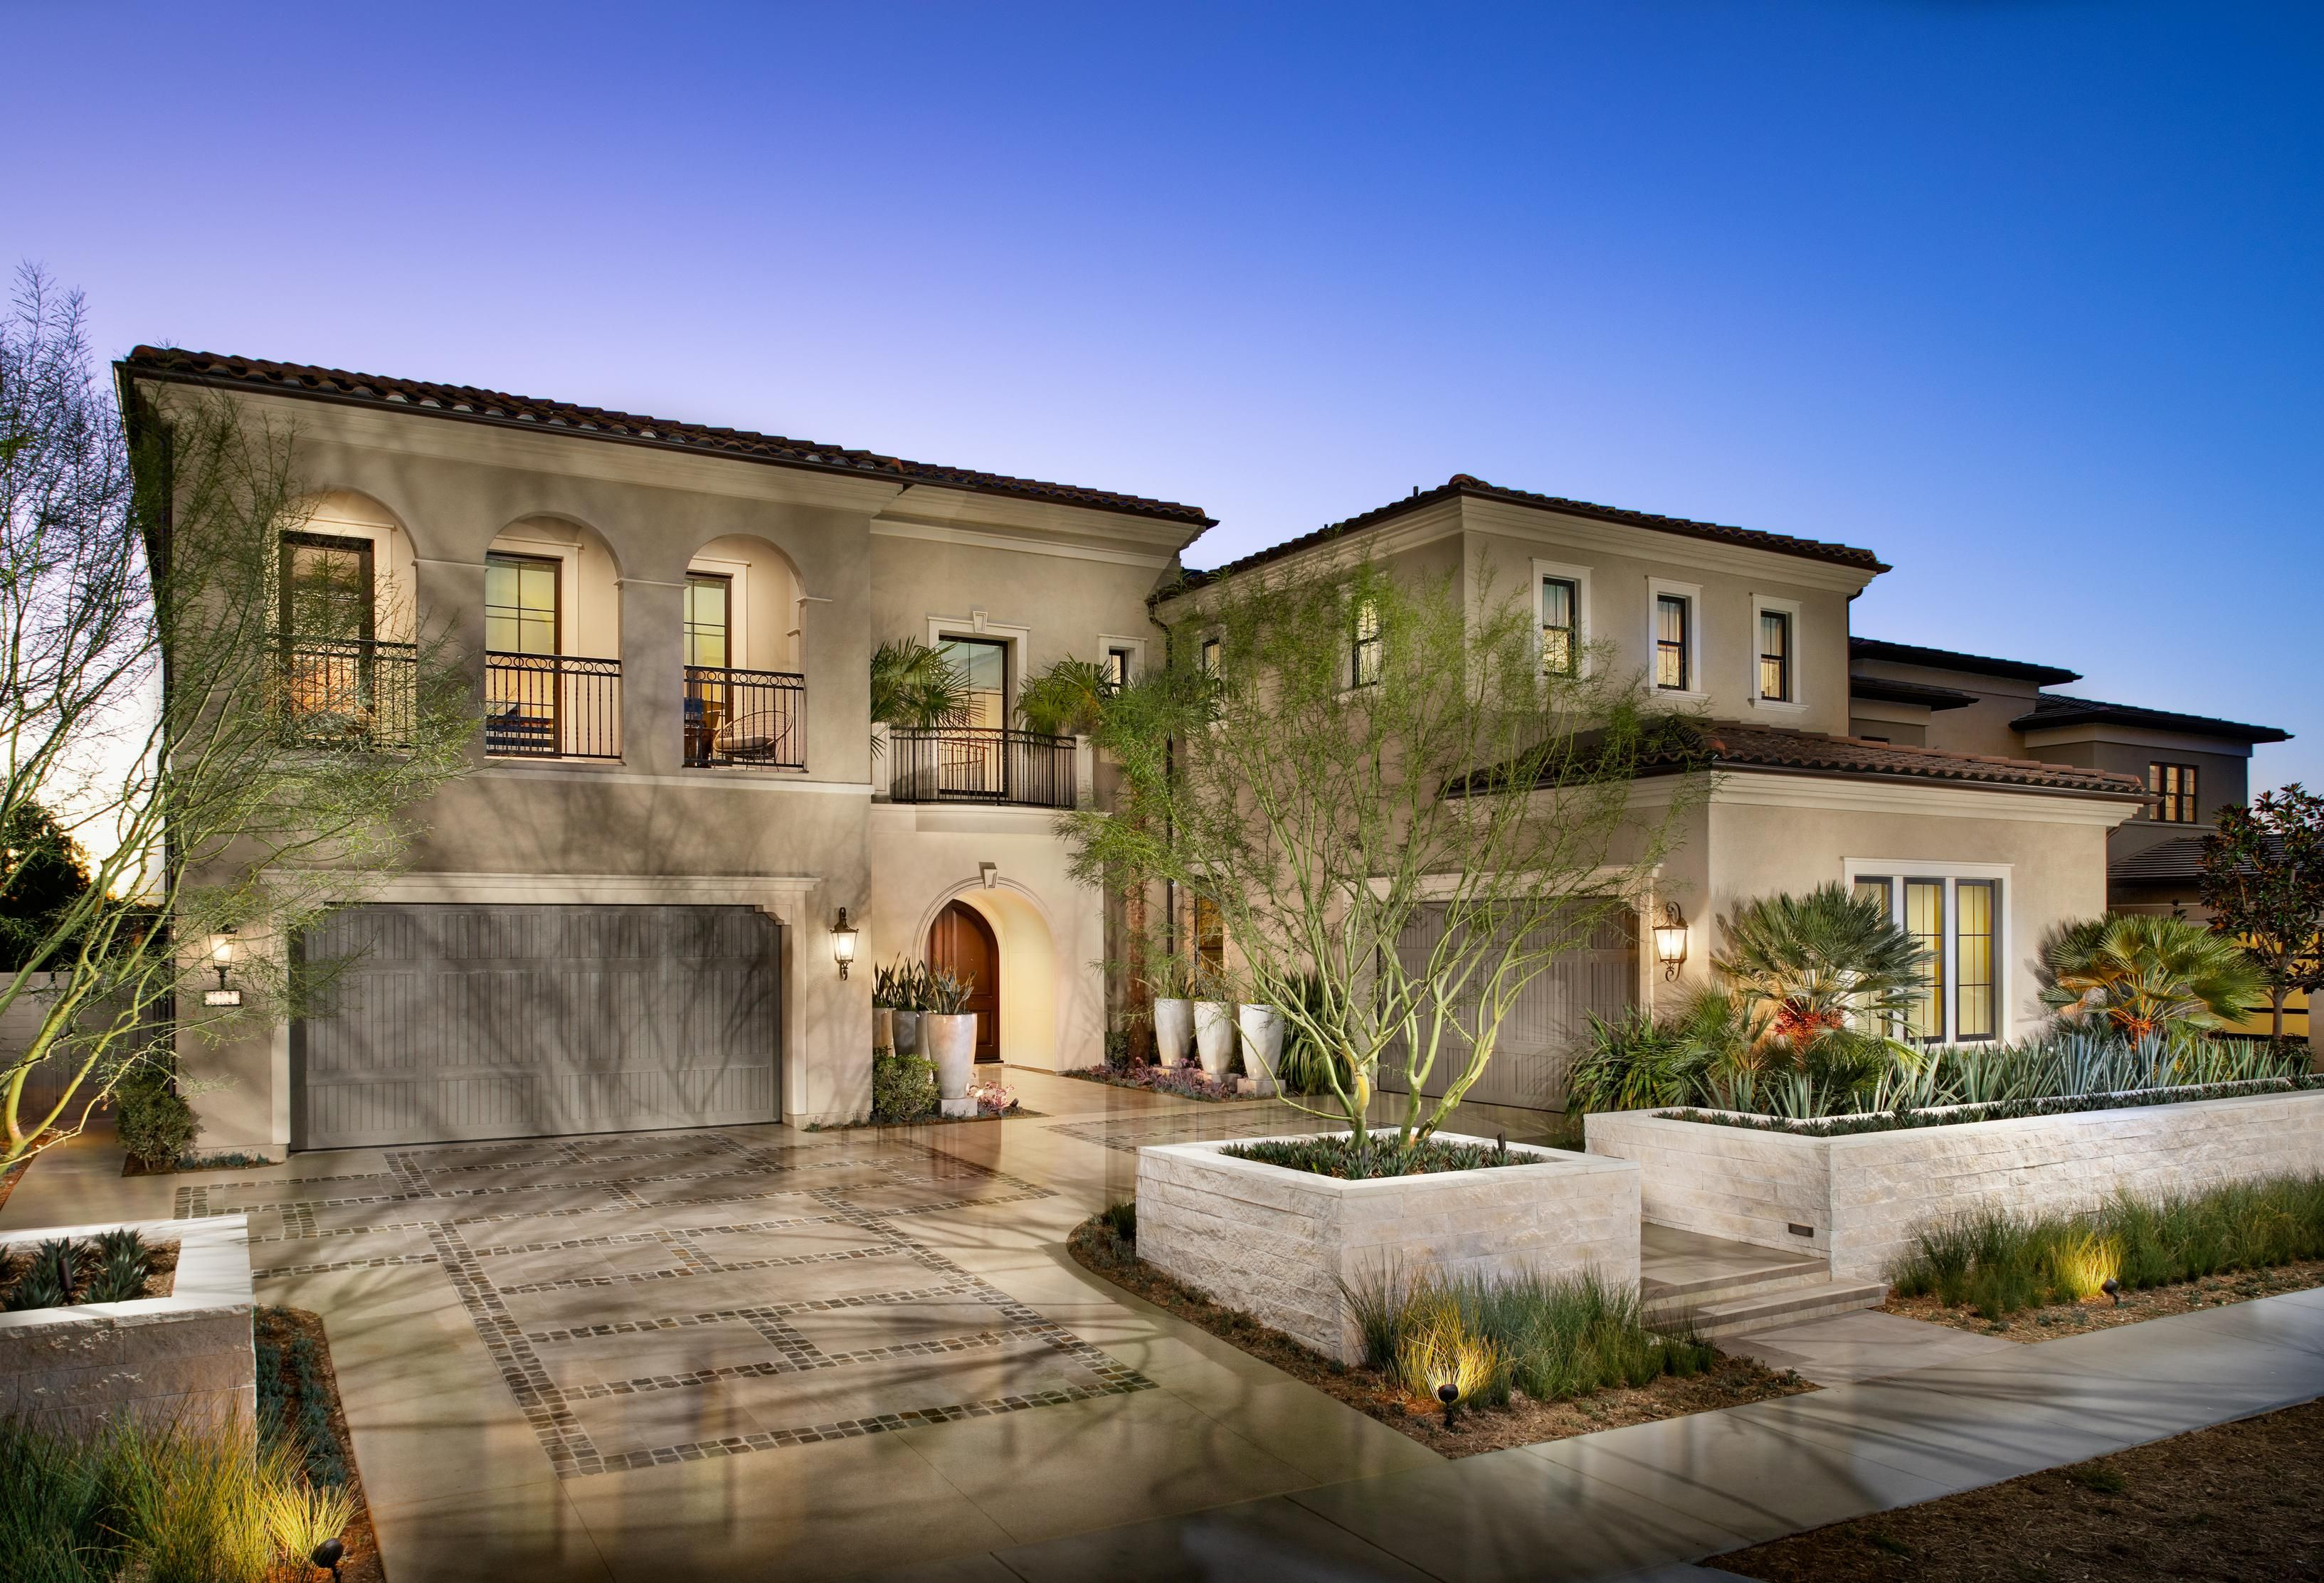 Starting With Is Marvelous Exterior The Castella Model Home From